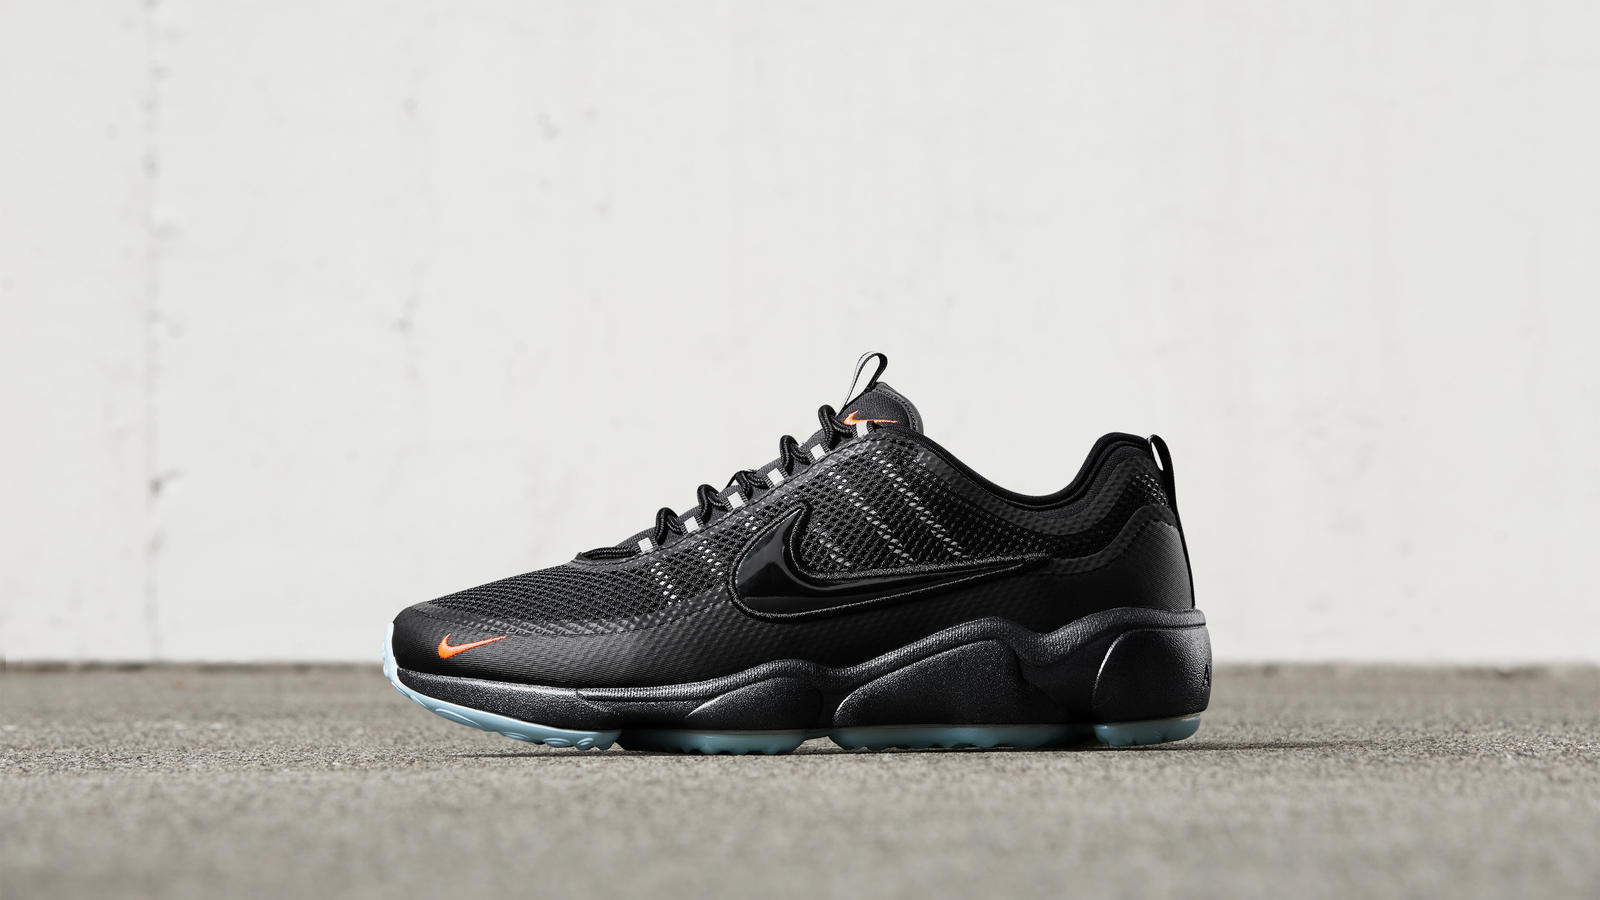 finest selection 6c8fe 81040 Nike Air Zoom Spiridon